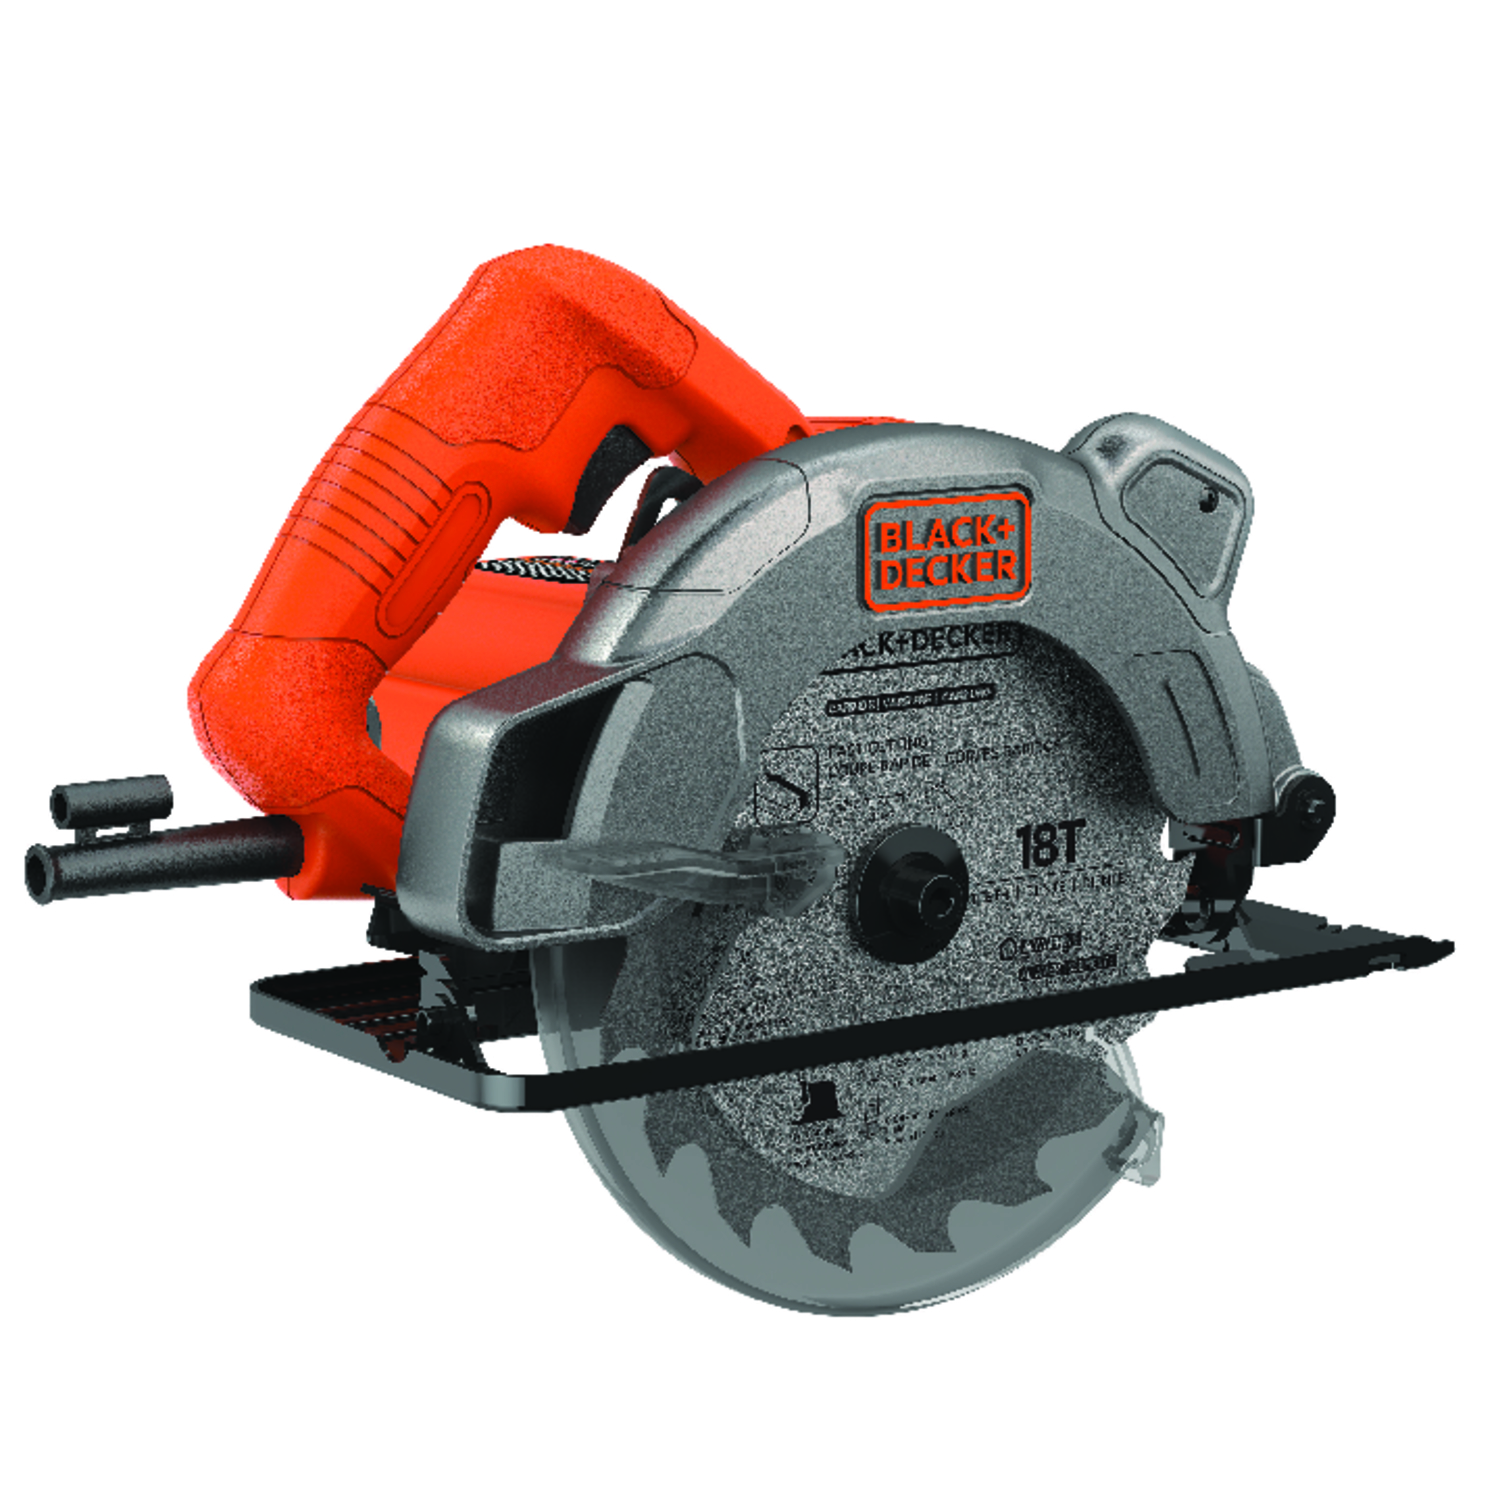 Black and decker 13 amps corded circular saw 7 14 in 3000 rpm black and decker 13 amps corded circular saw 7 14 in 3000 keyboard keysfo Choice Image